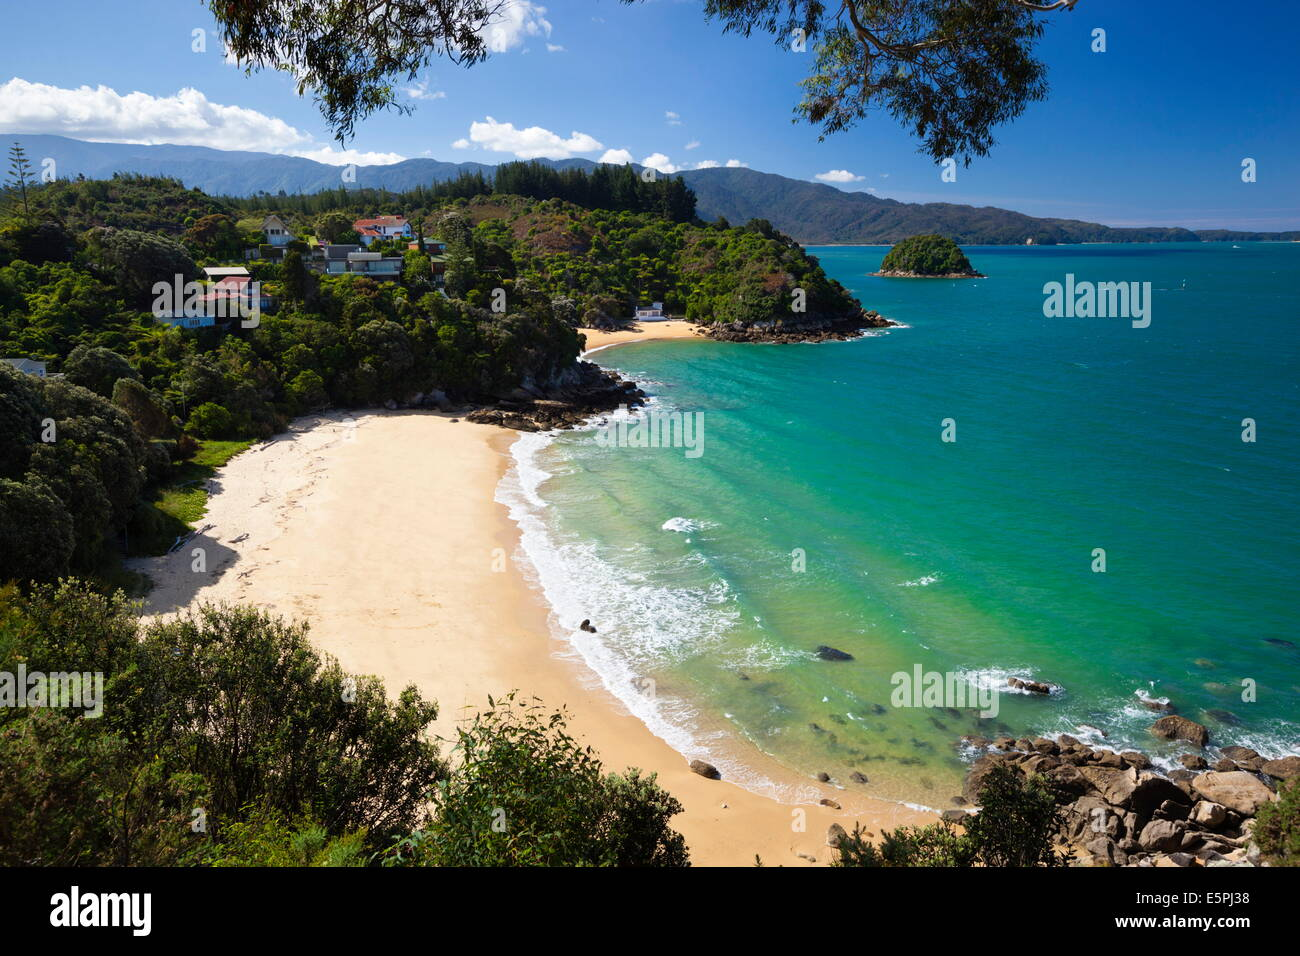 Breaker Bay and Honeymoon Bay from Kaka Lookout, Kaiteriteri, Nelson region, South Island, New Zealand, Pacific - Stock Image